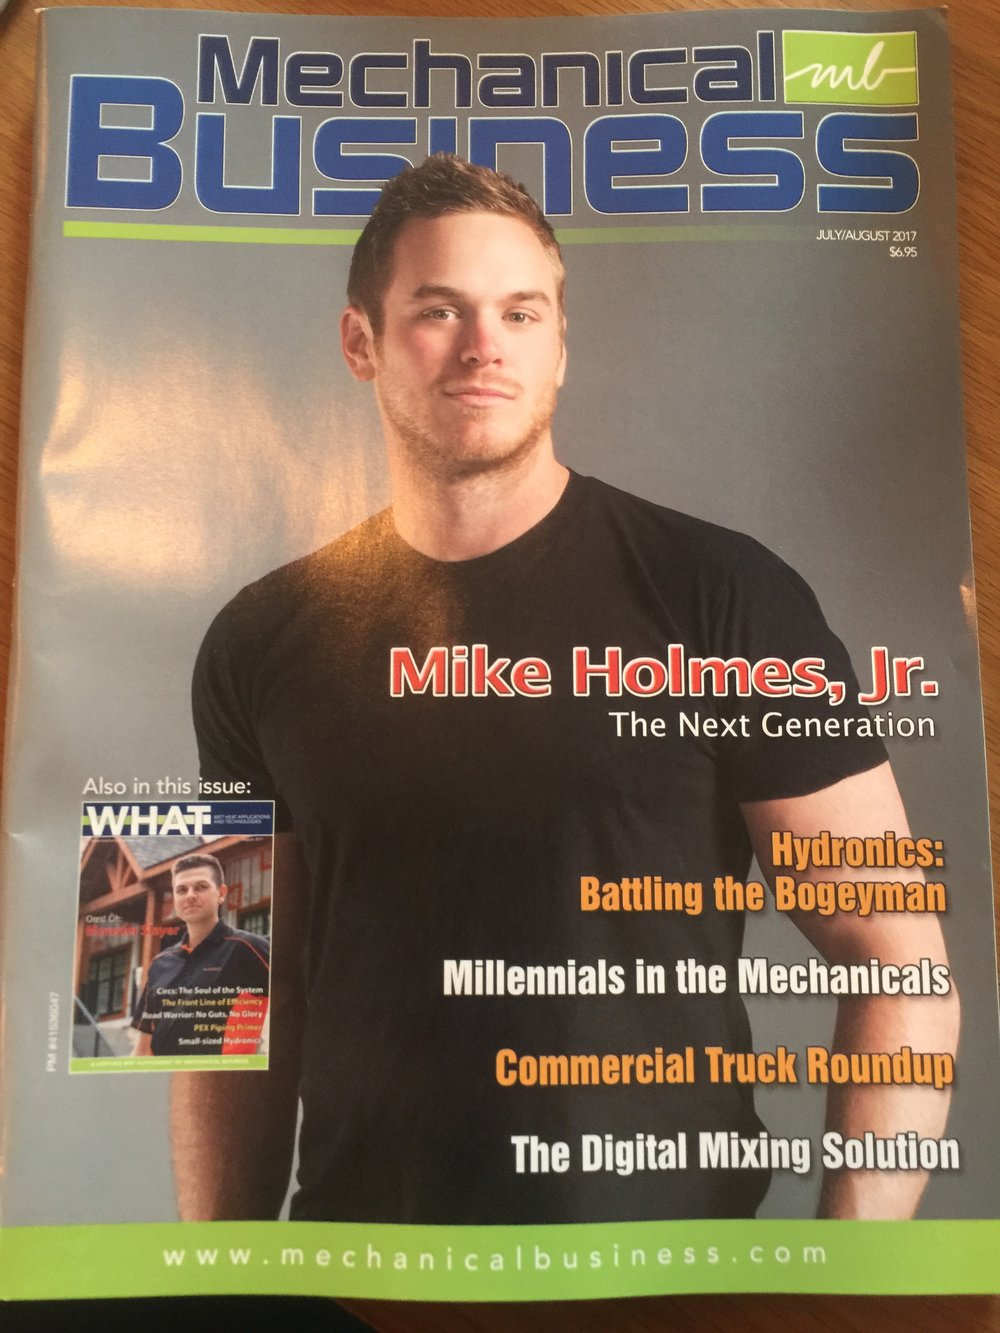 07-26-17_Mechanical Business Magazine_Mike Holmes Jr. - The Next Generation.JPG